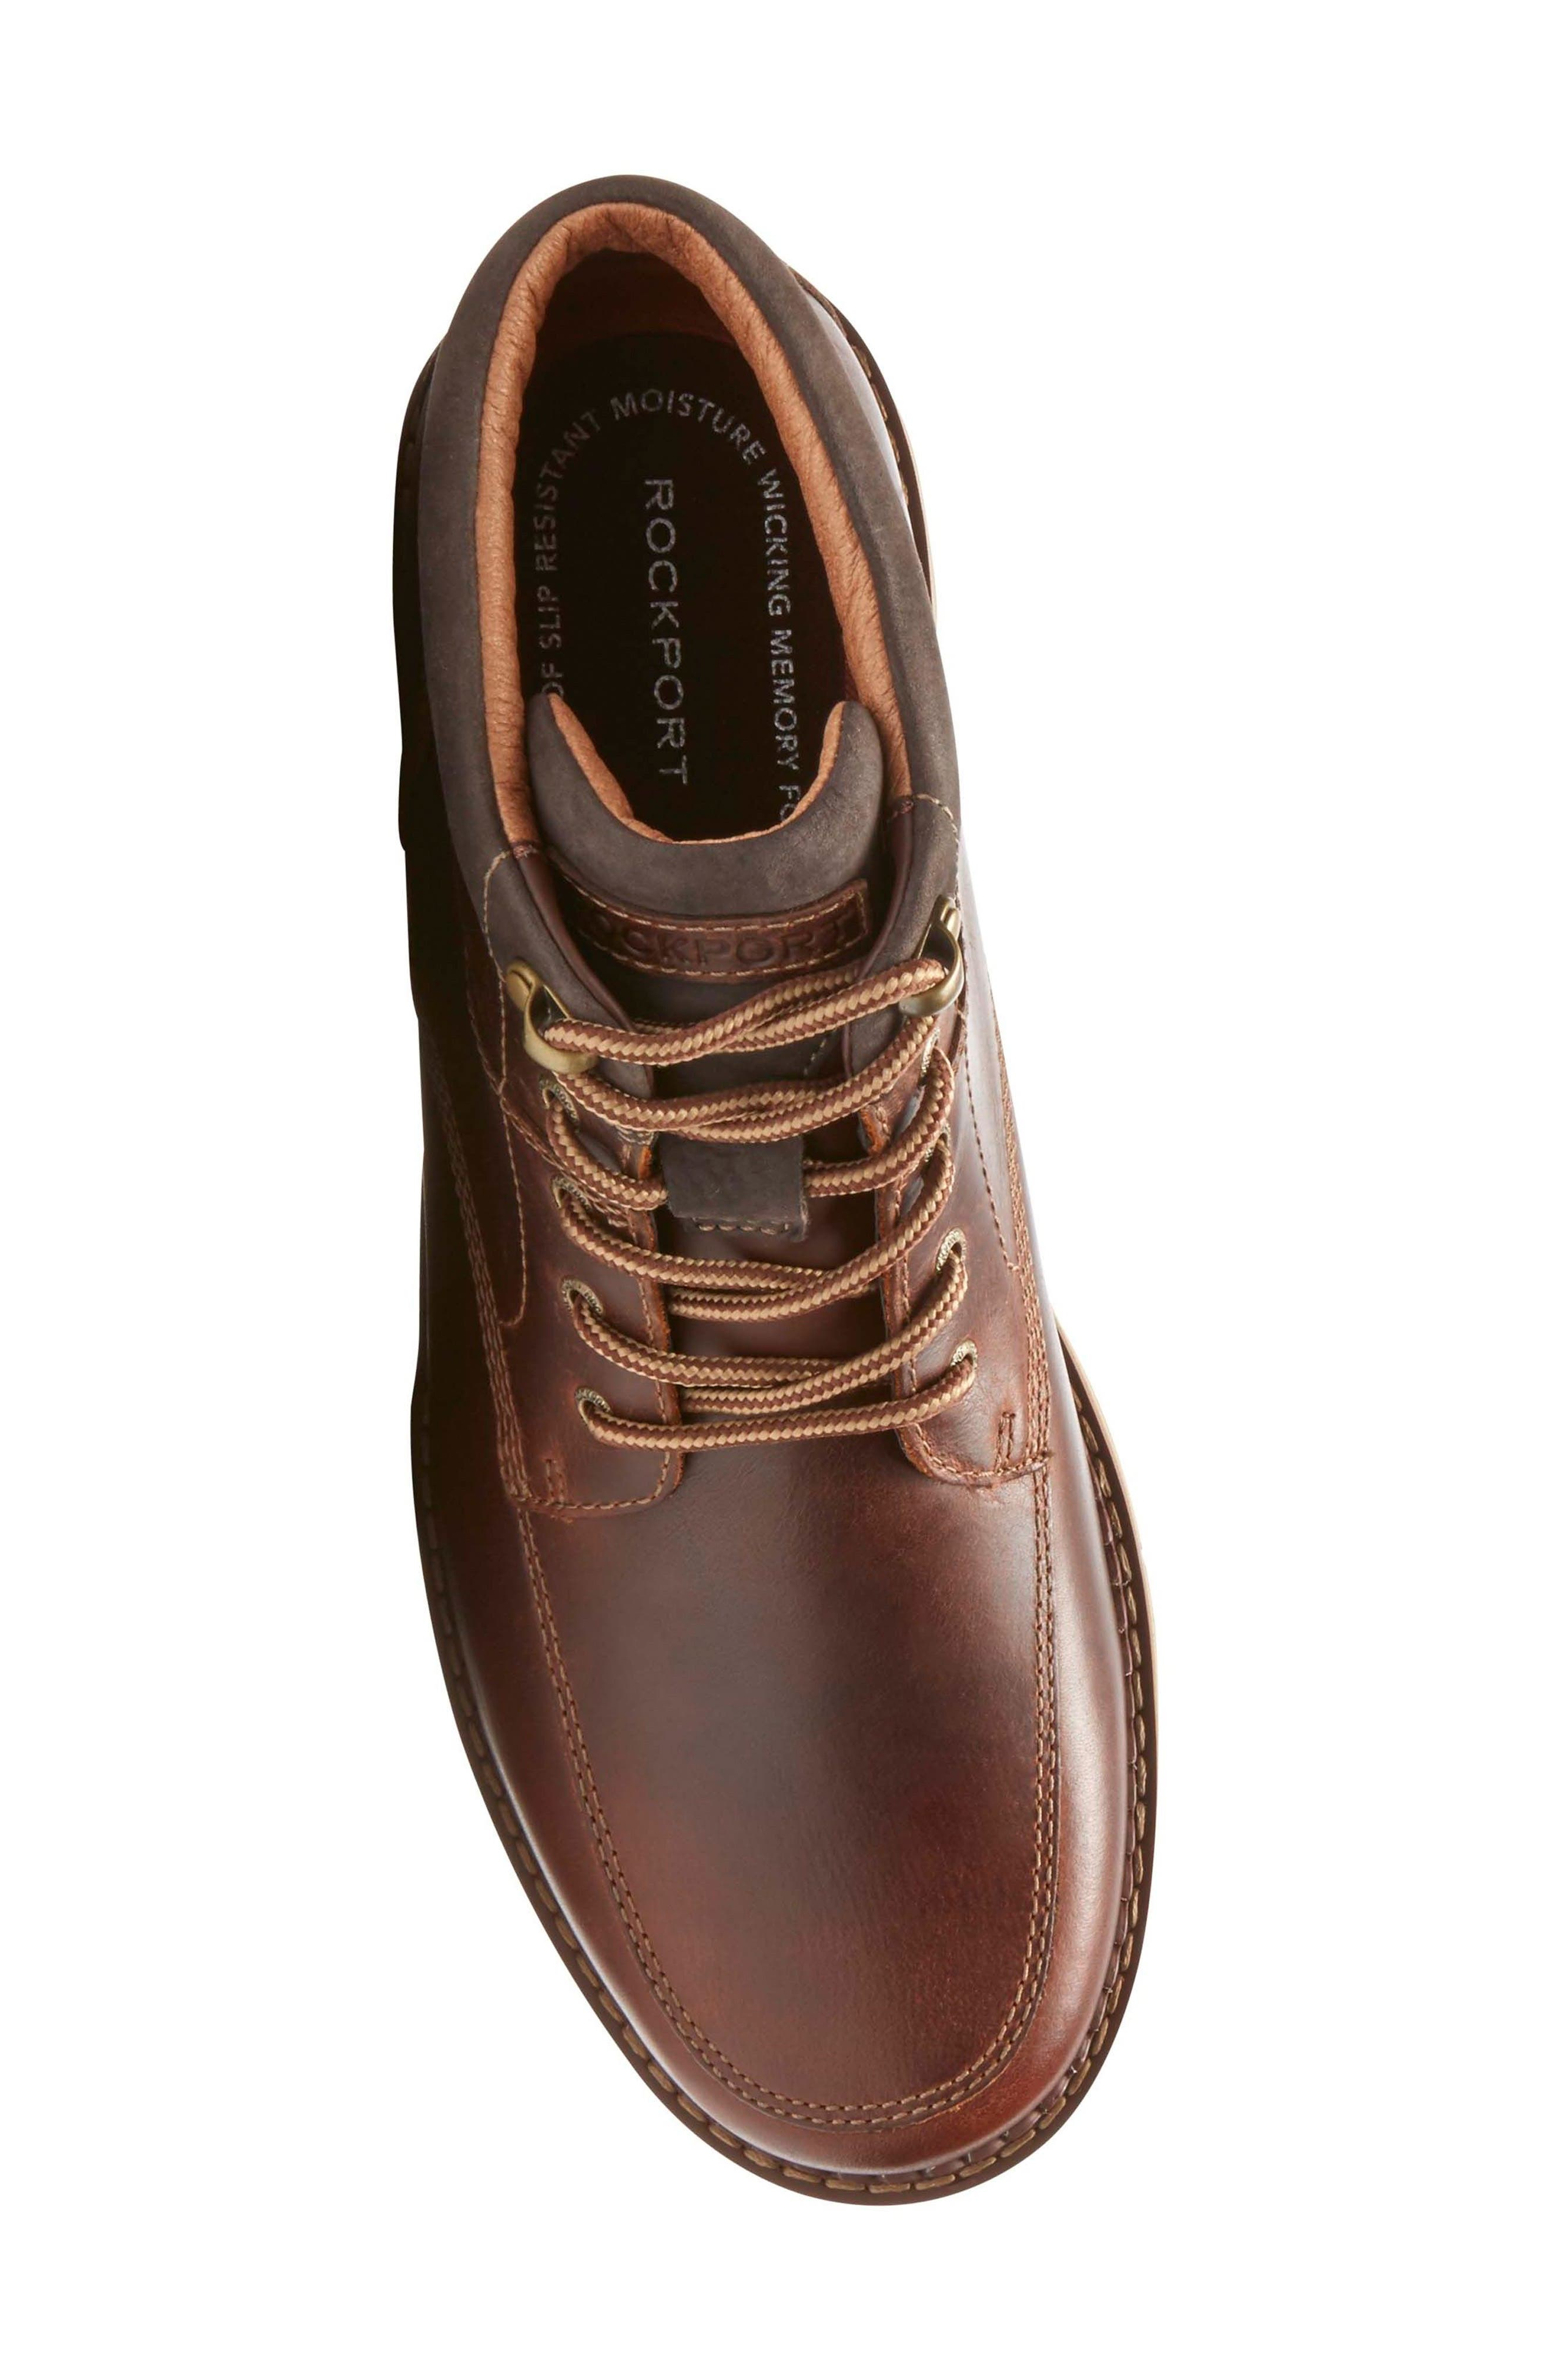 Centry Moc Toe Boot,                             Alternate thumbnail 5, color,                             Brown Leather